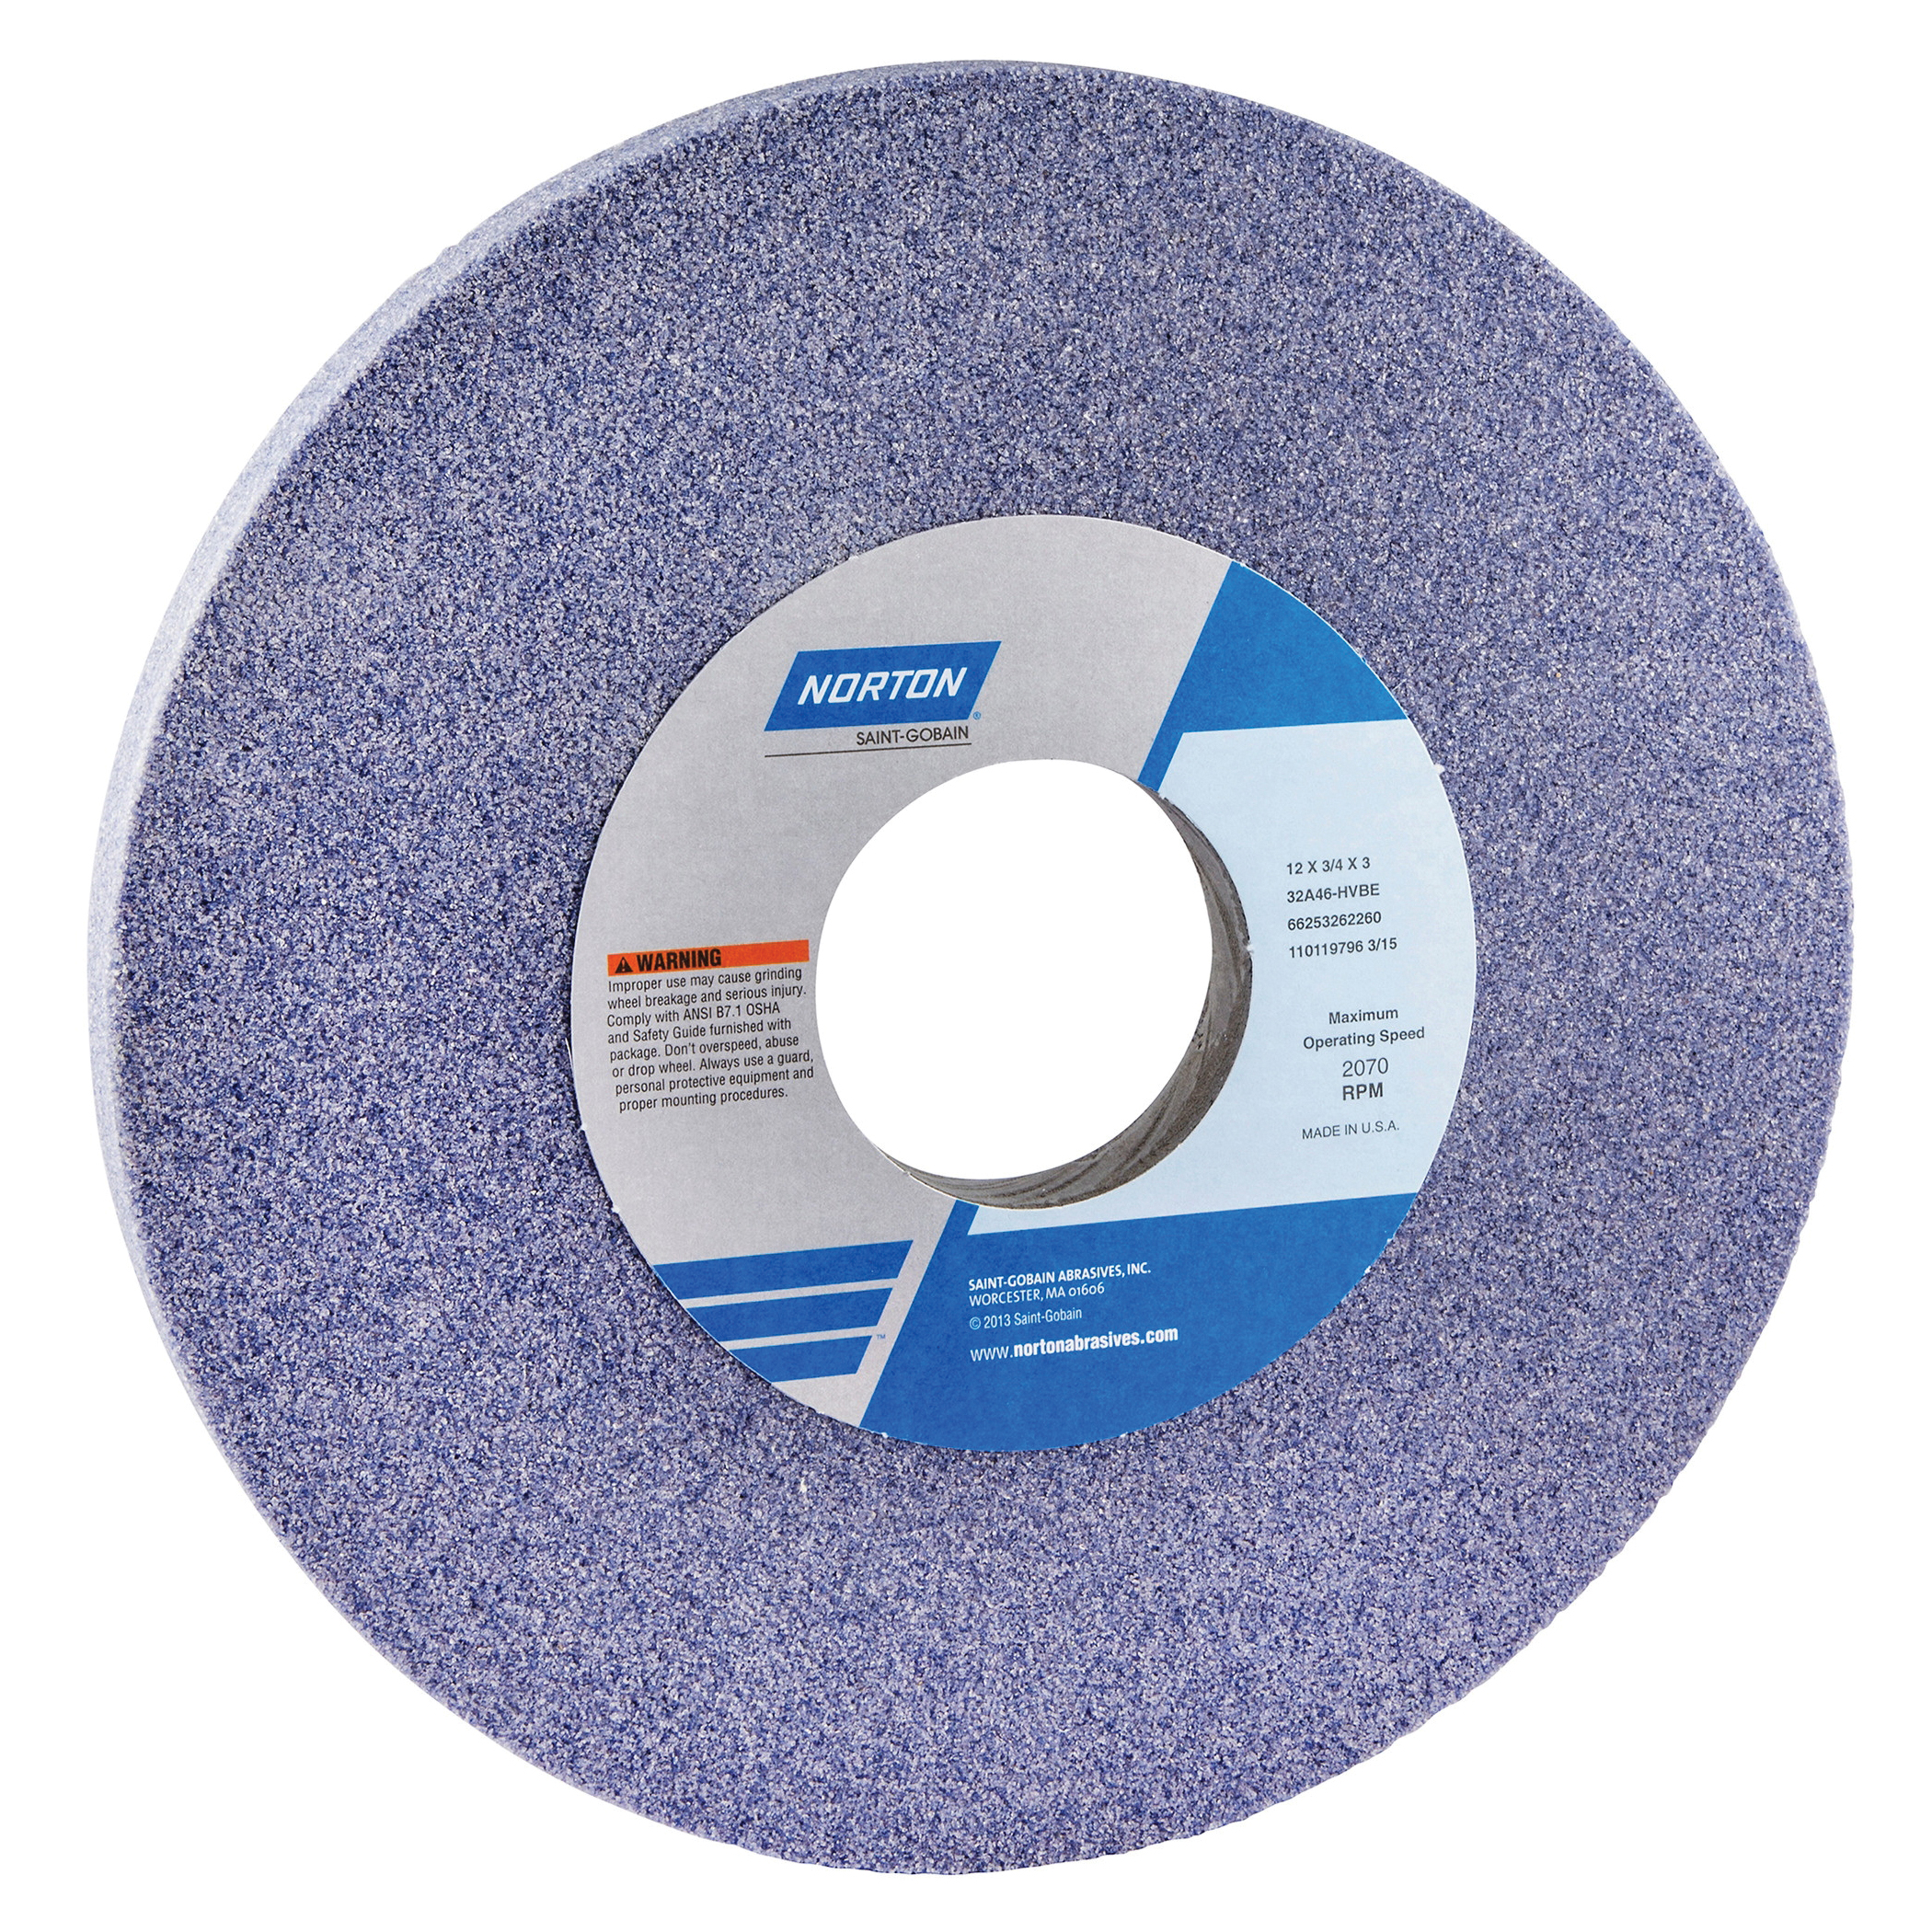 Norton® 66253262261 32A Straight Toolroom Wheel, 12 in Dia x 3/4 in THK, 3 in Center Hole, 46 Grit, Aluminum Oxide Abrasive